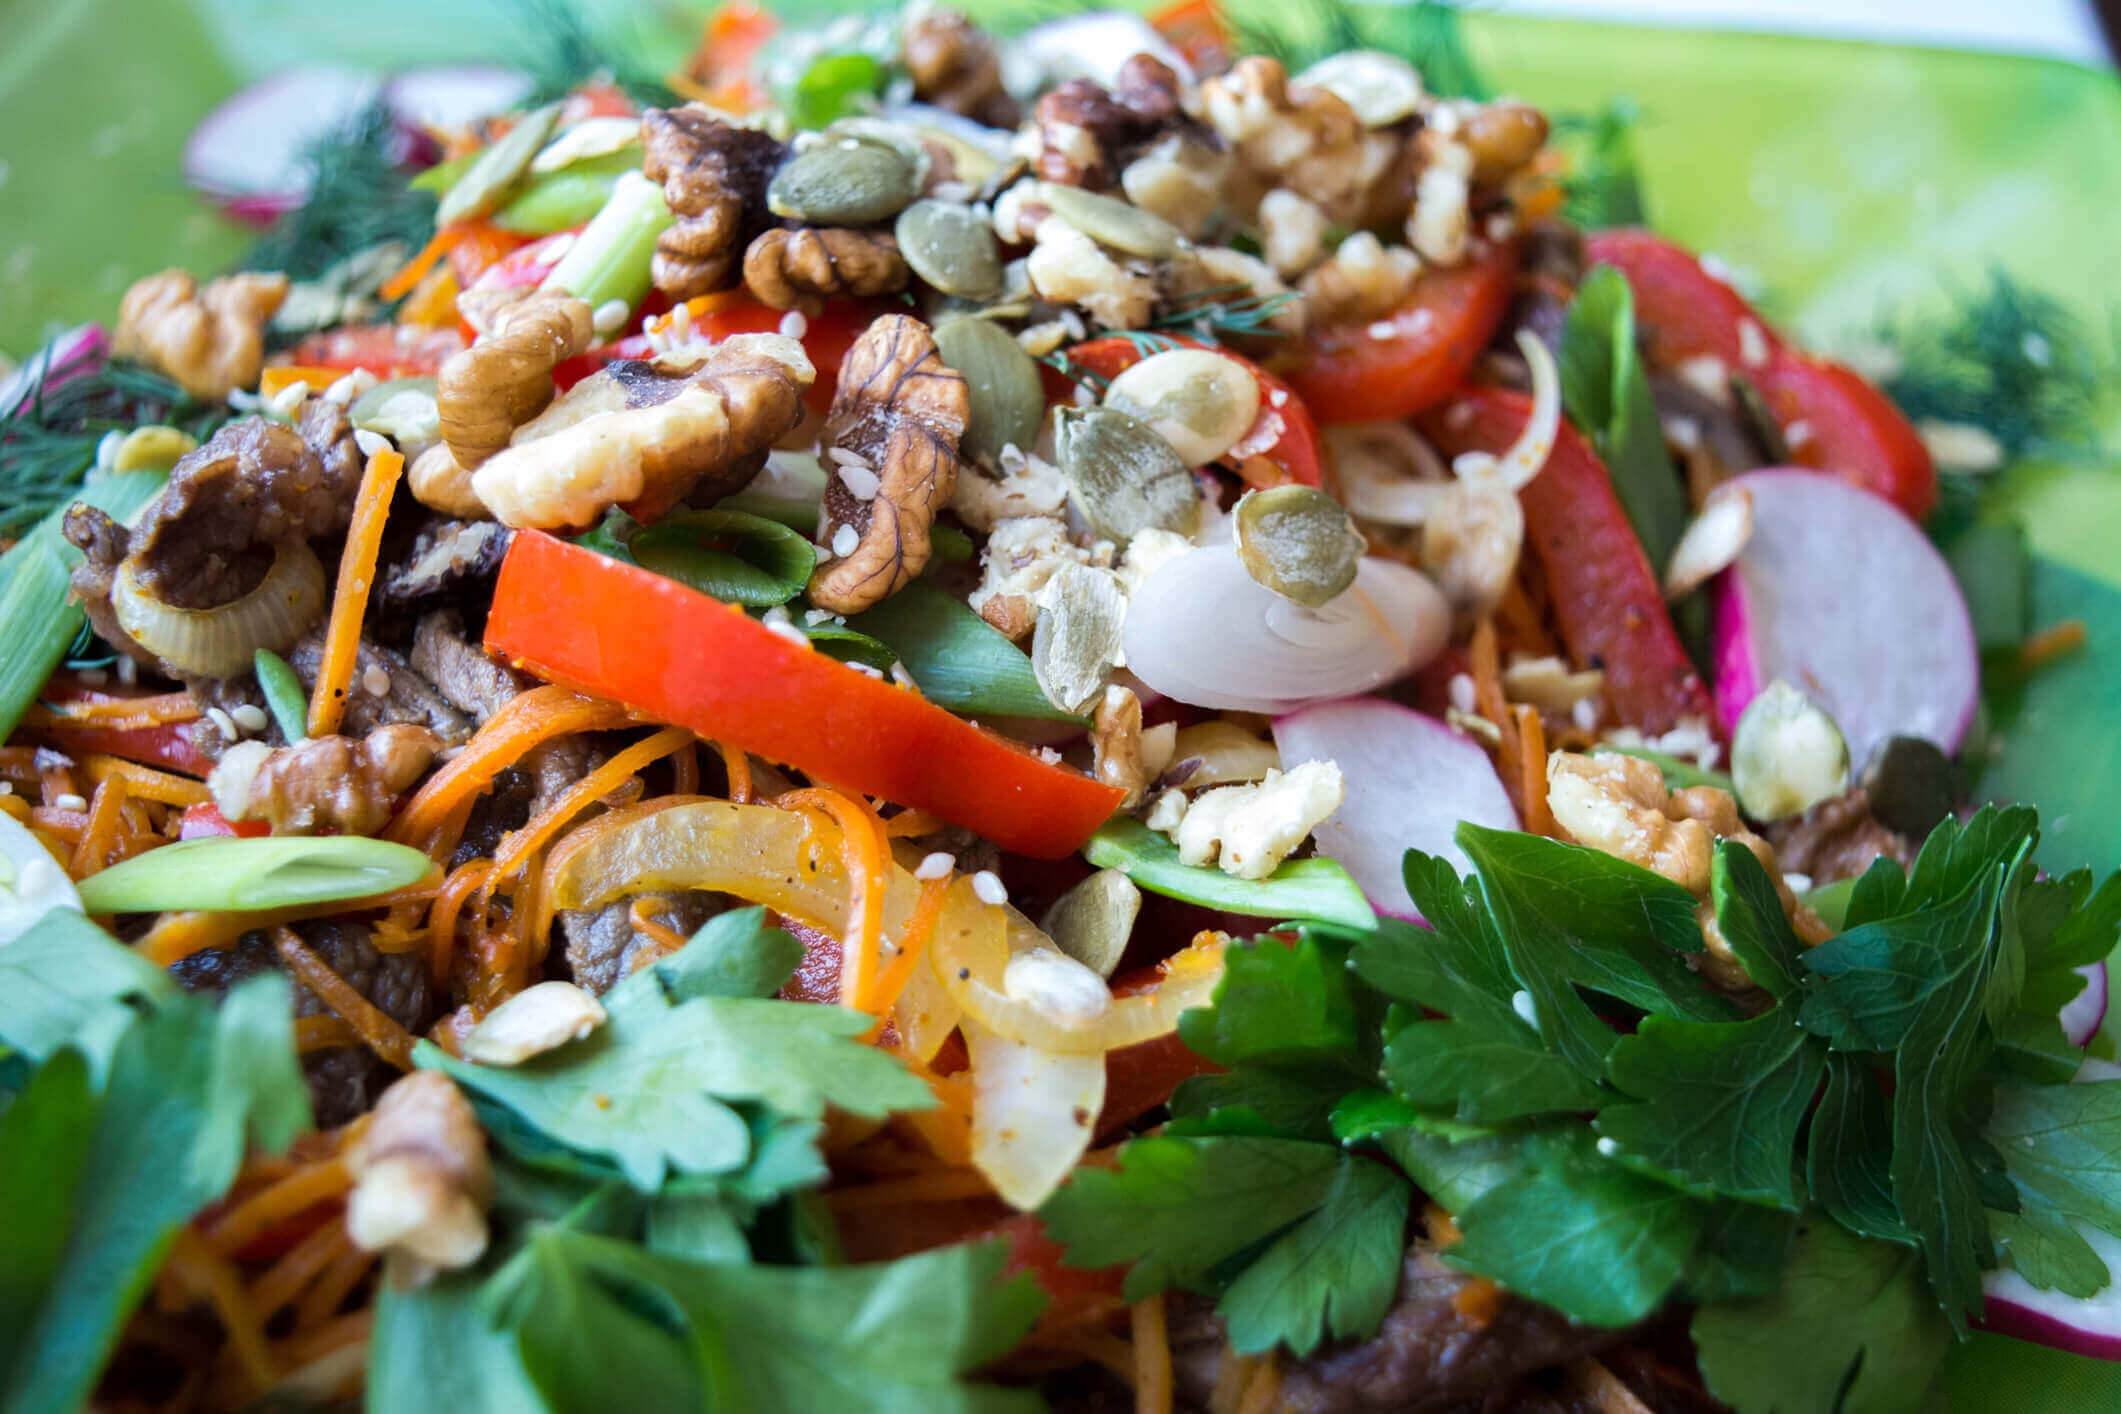 Warm salad with beef and vegetables